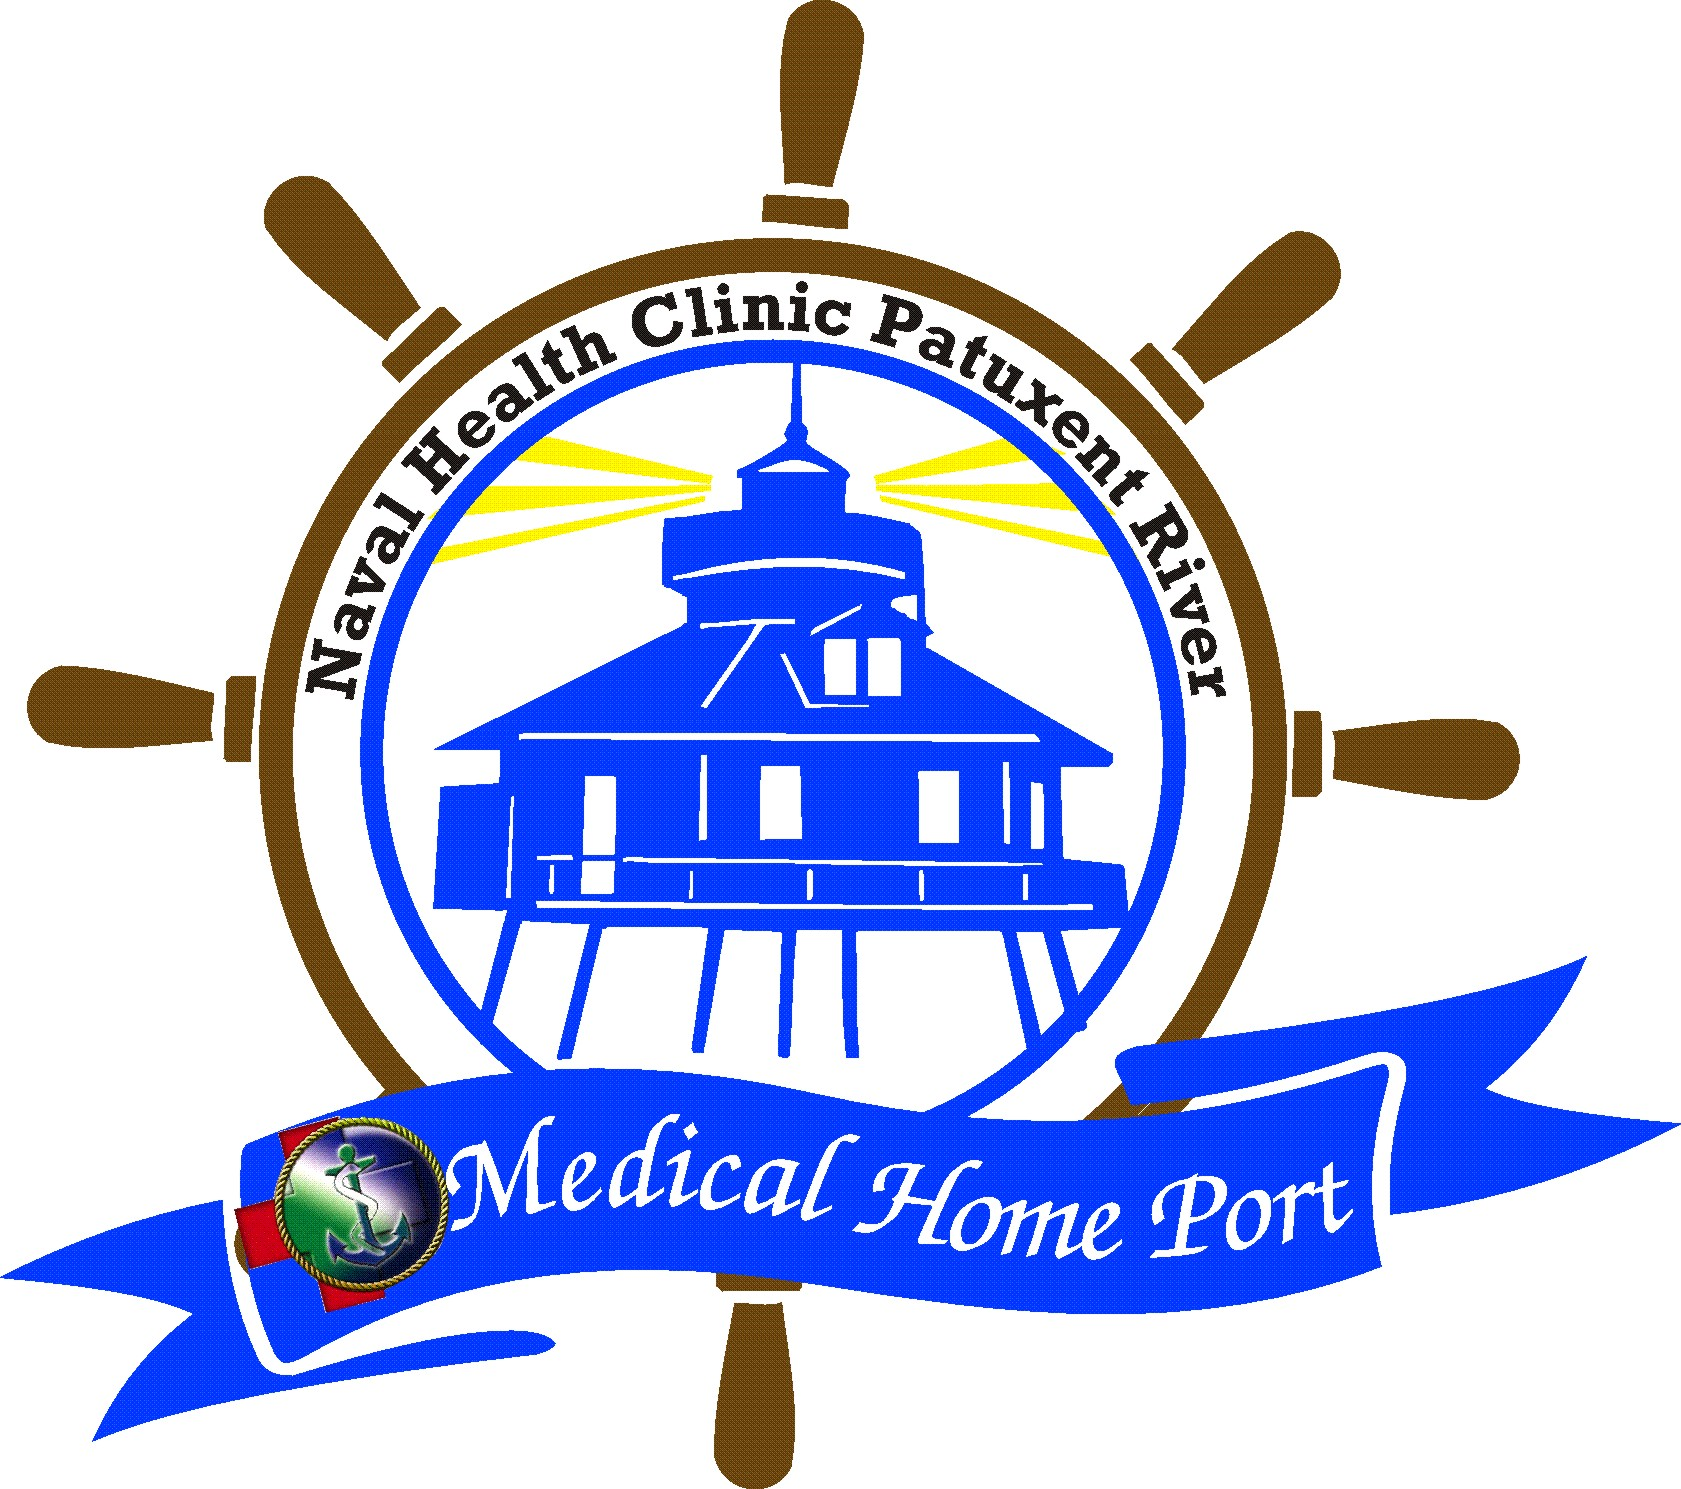 Medical Home Port